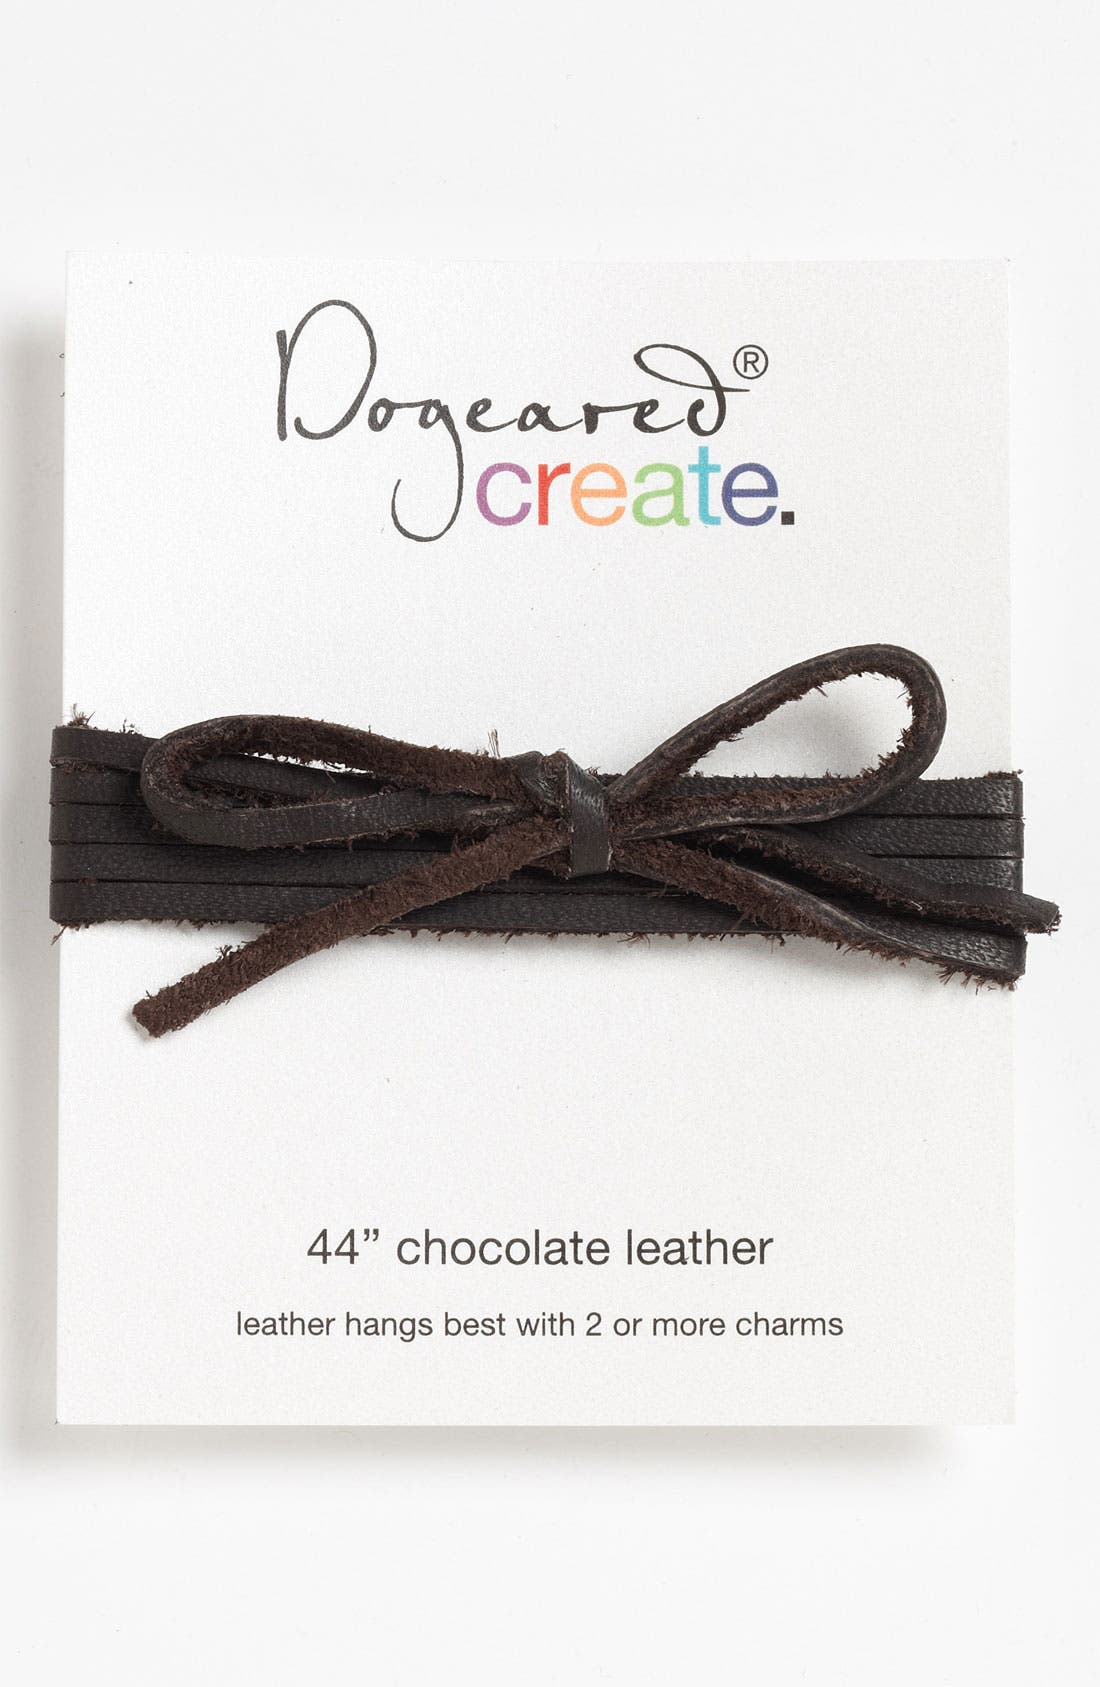 Alternate Image 1 Selected - Dogeared 'Create' Long Leather Necklace